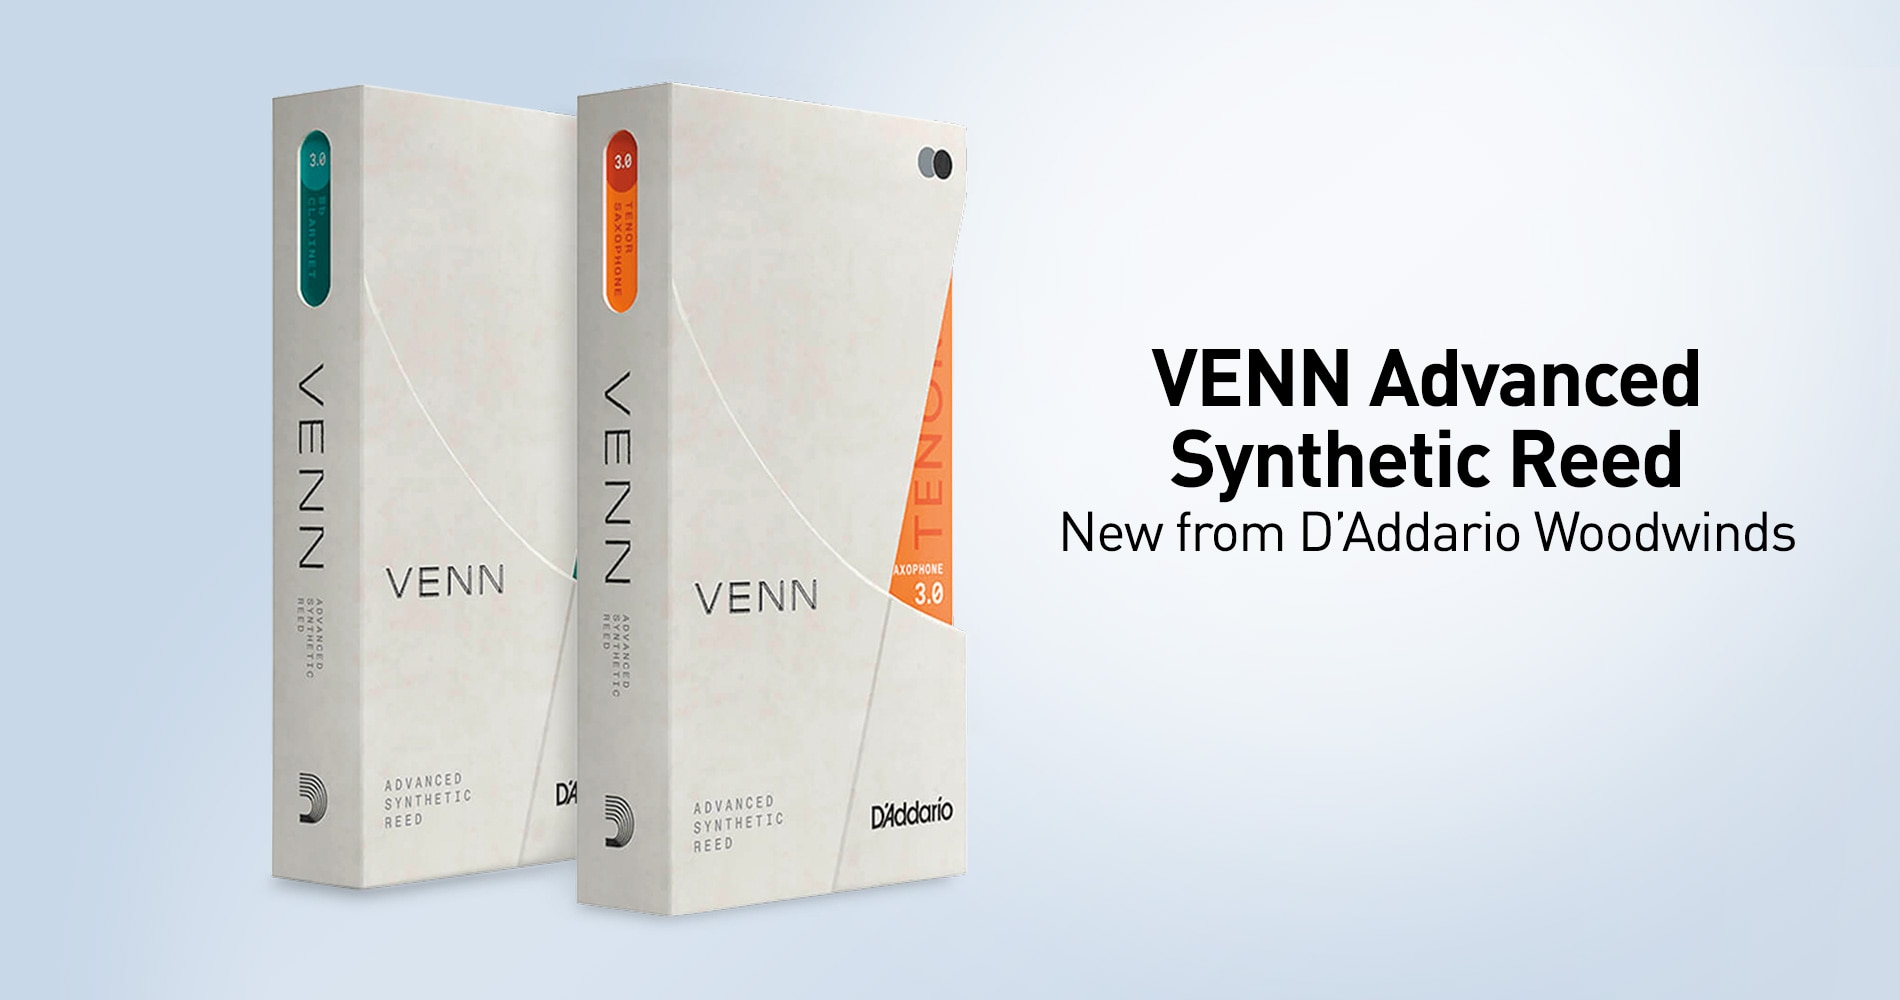 VENN Advanced Synthetic Reed – A New Species of Reed